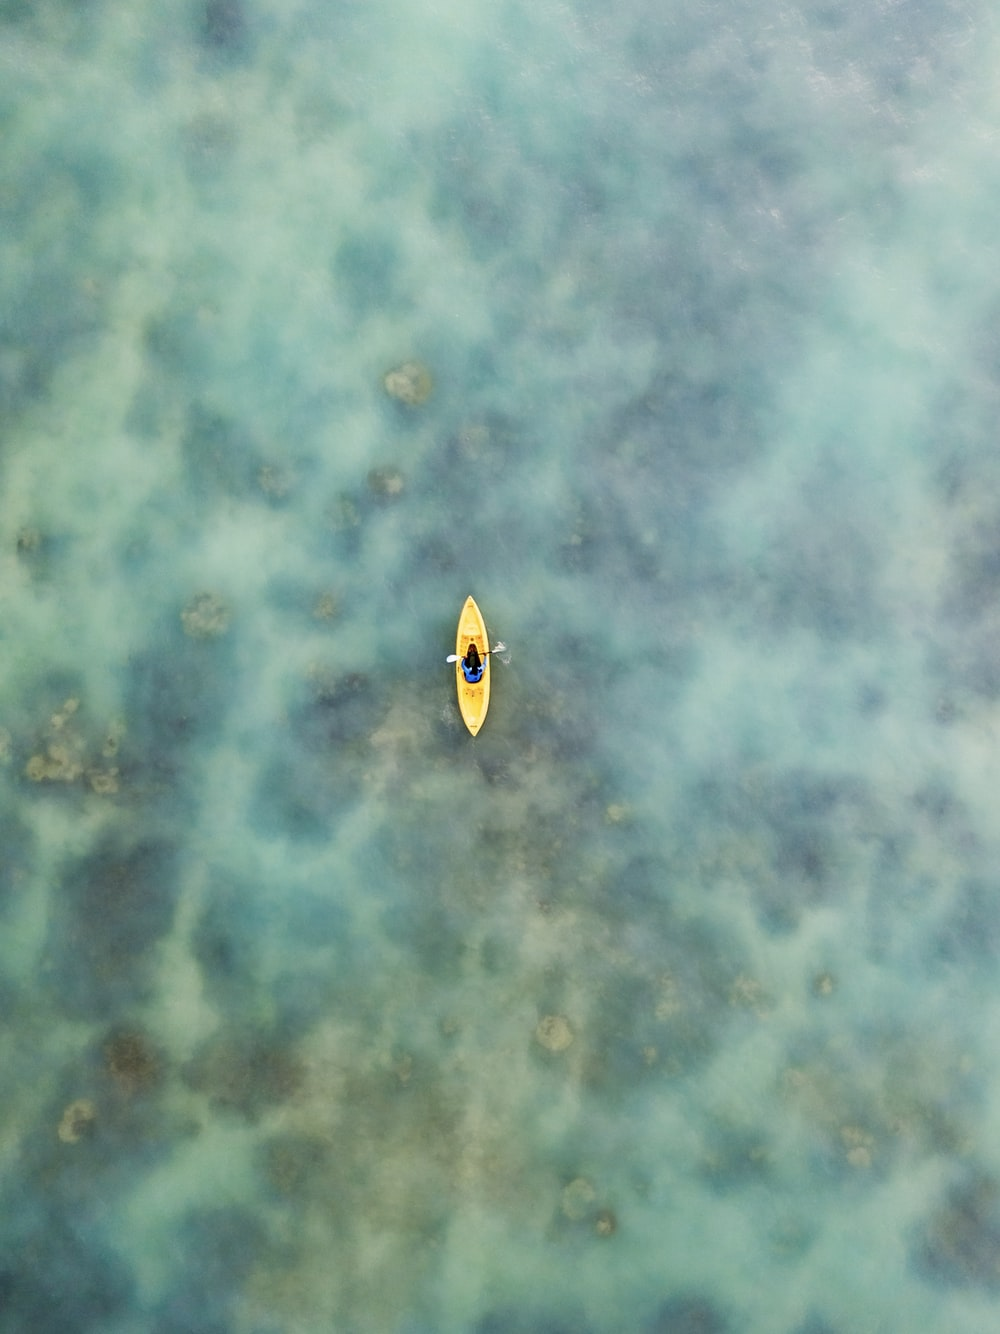 yellow and black boat on water